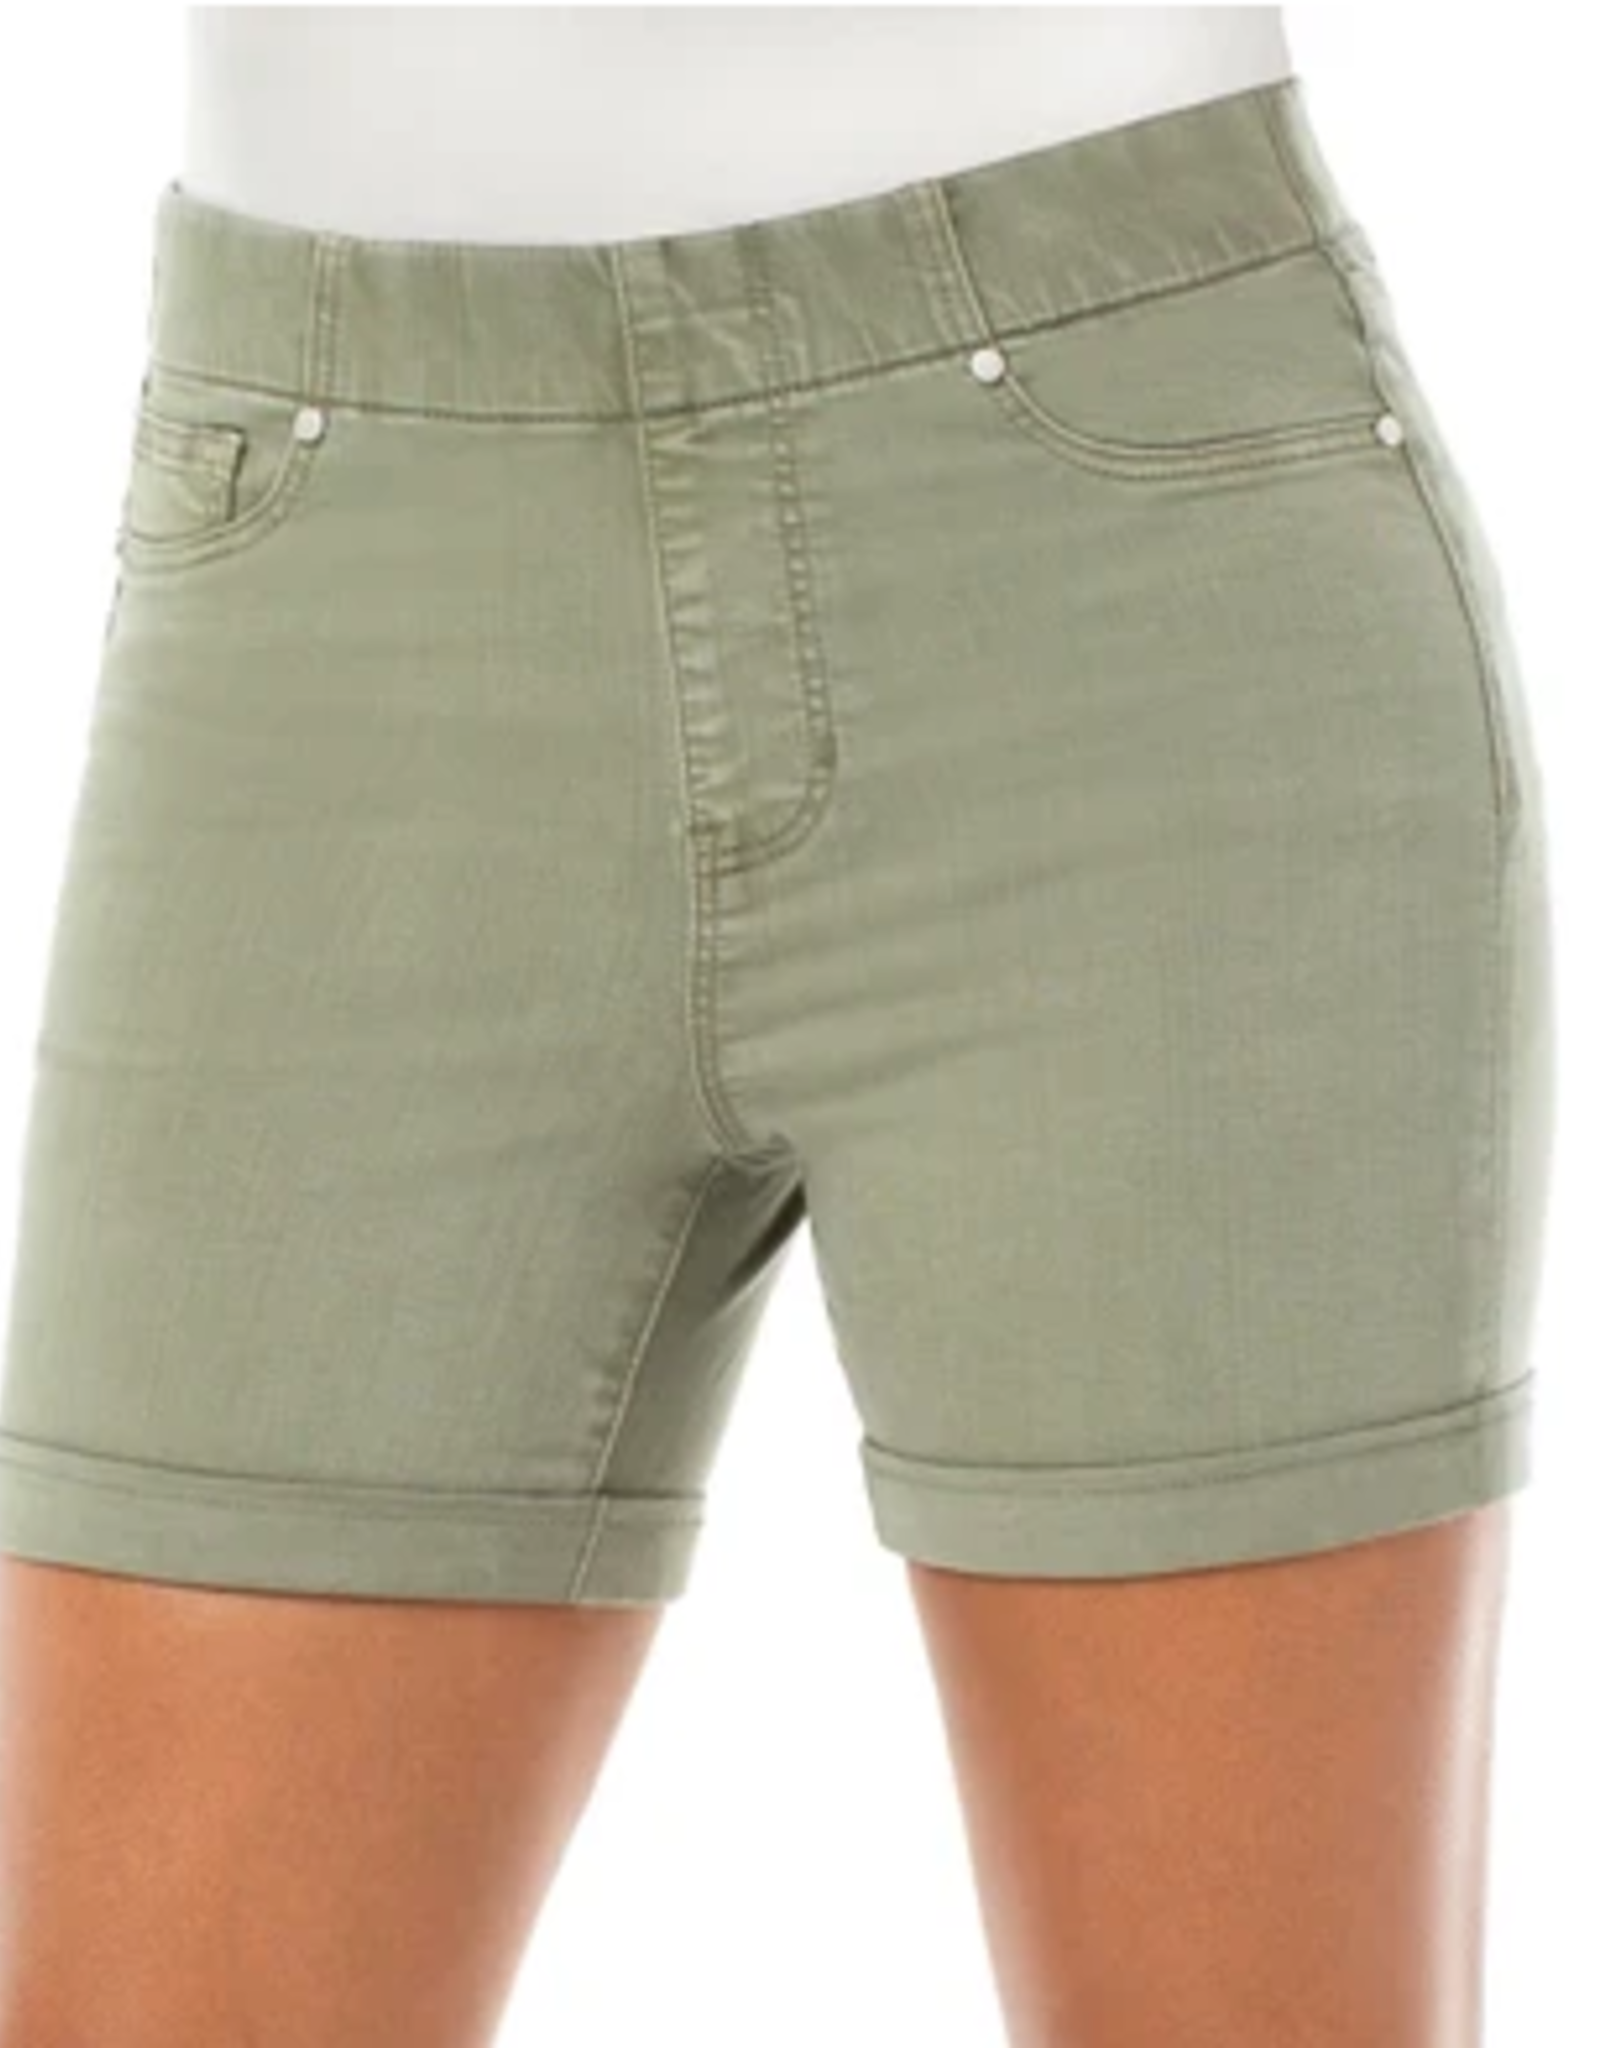 Pull-On Chloe Shorts